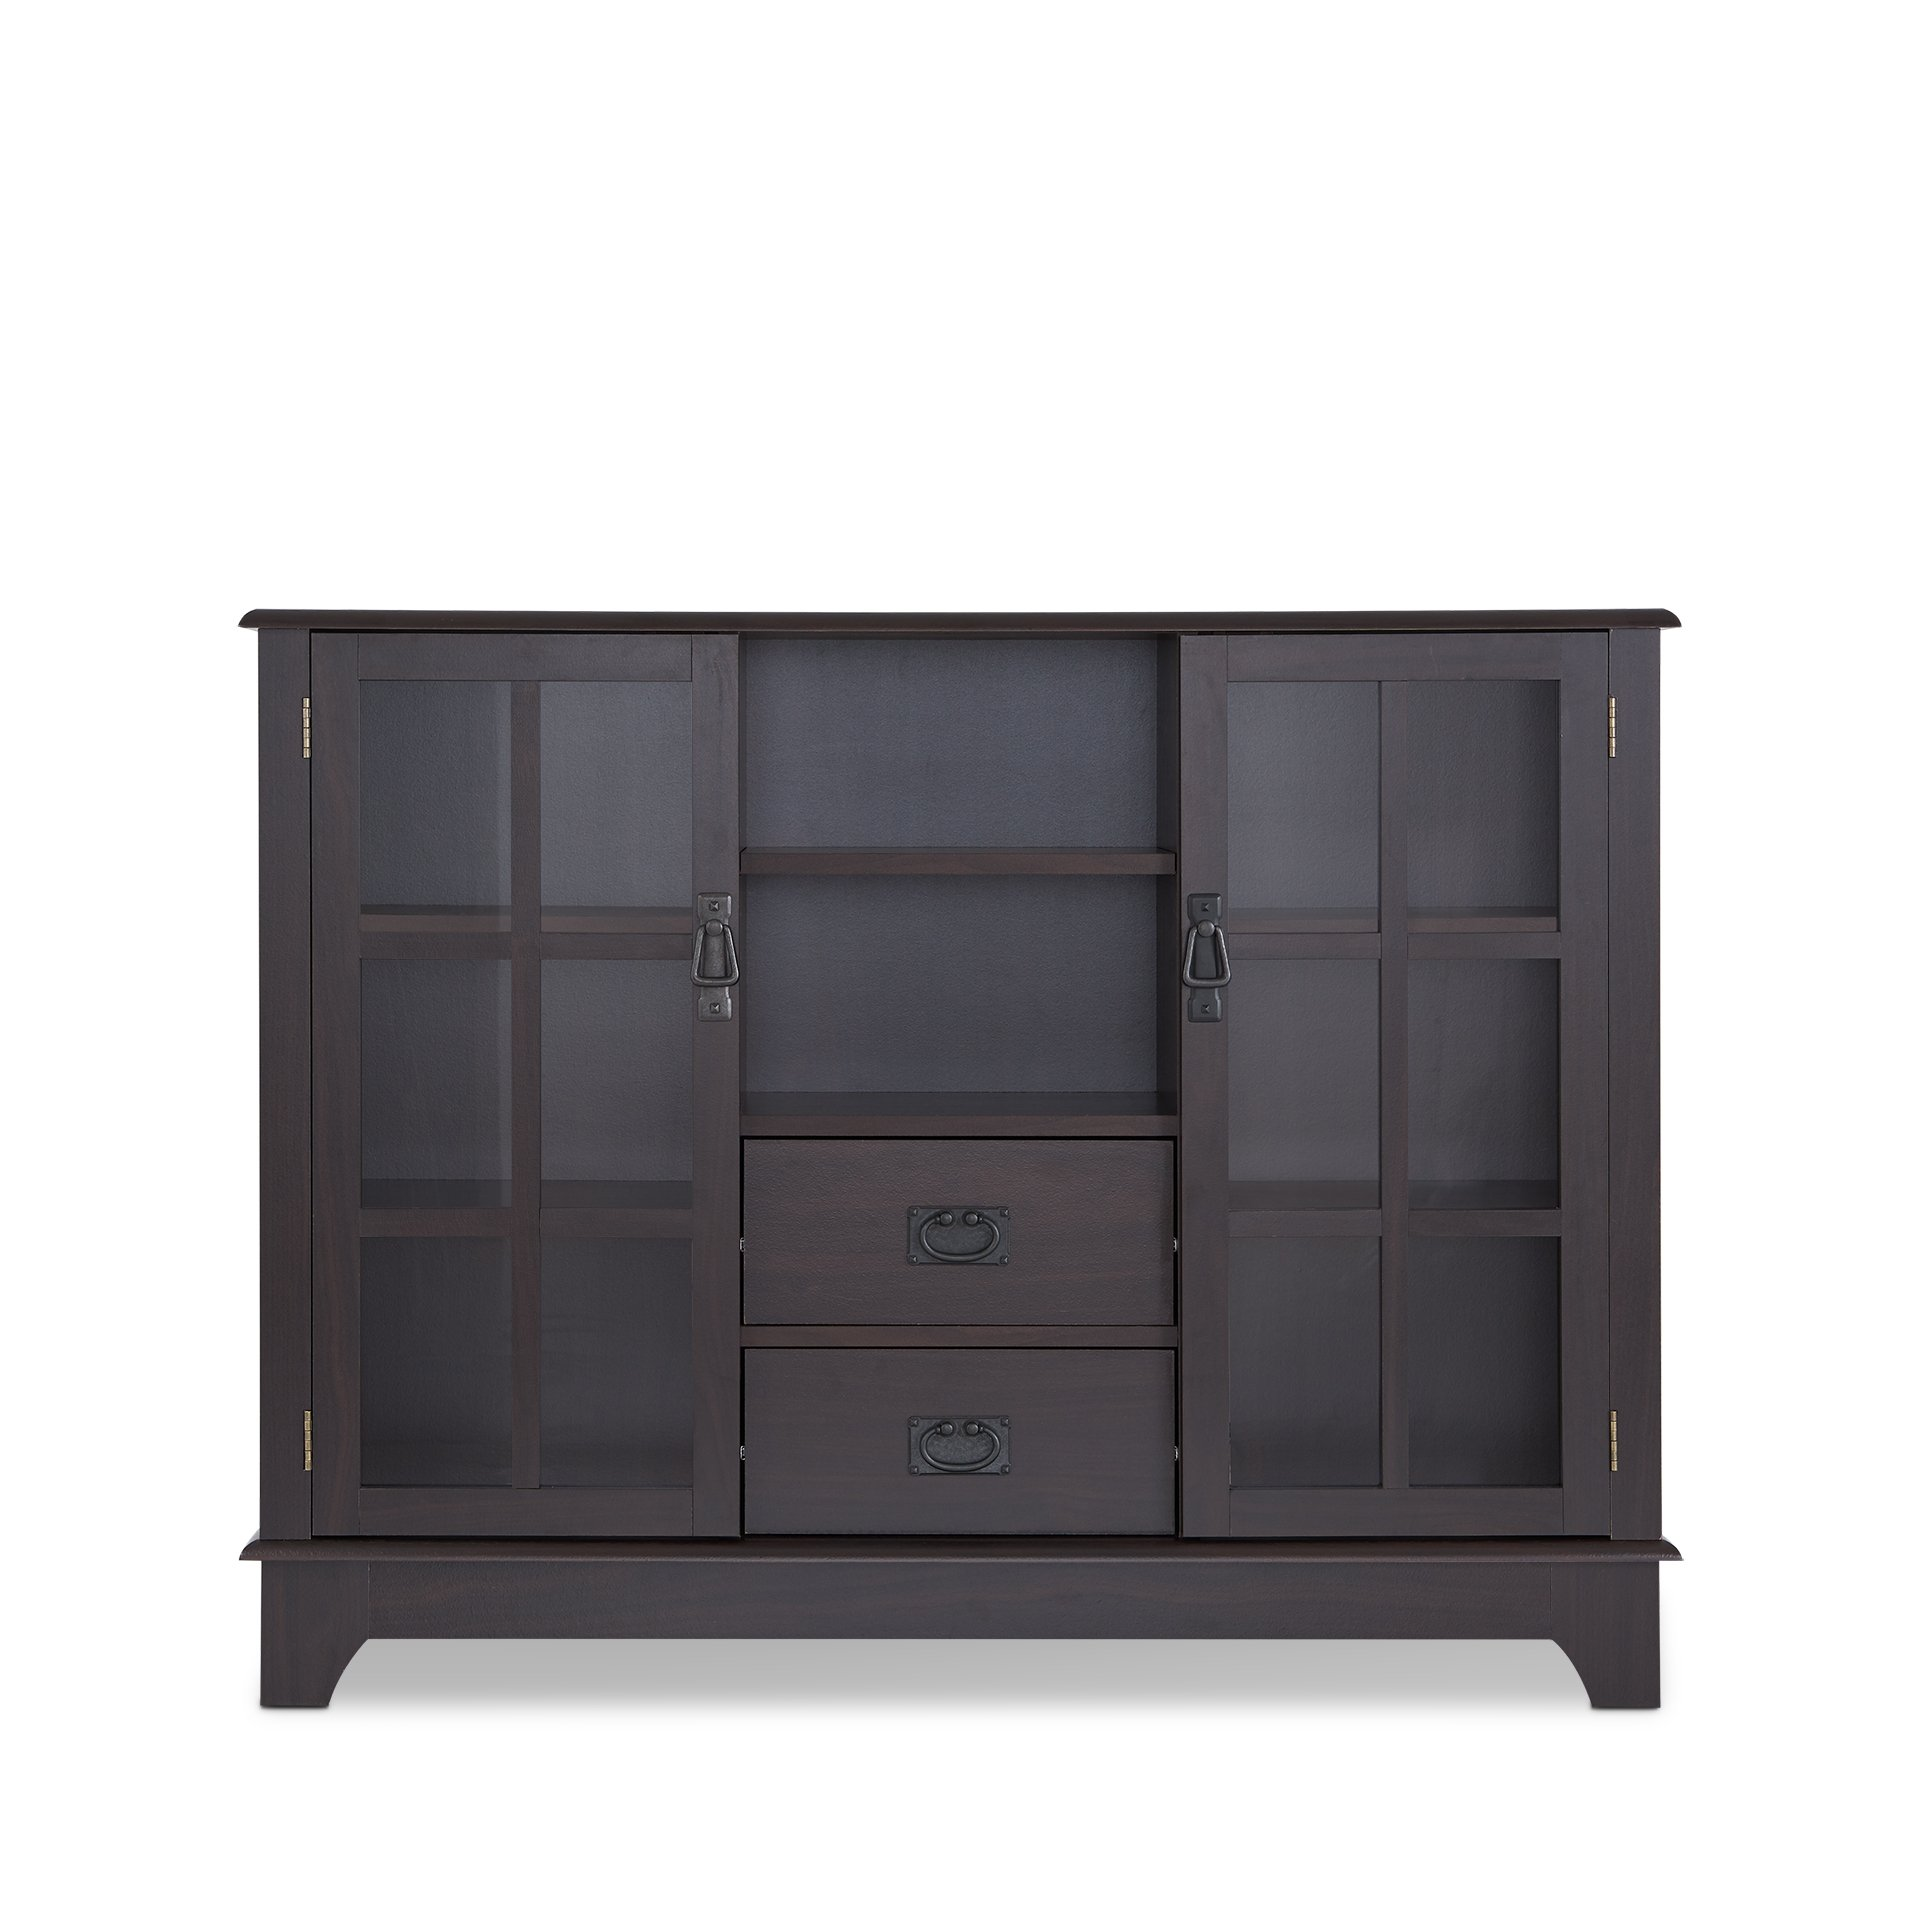 ComfortScape Wooden Console Table with Storage and Tempered Glass Door, Espresso